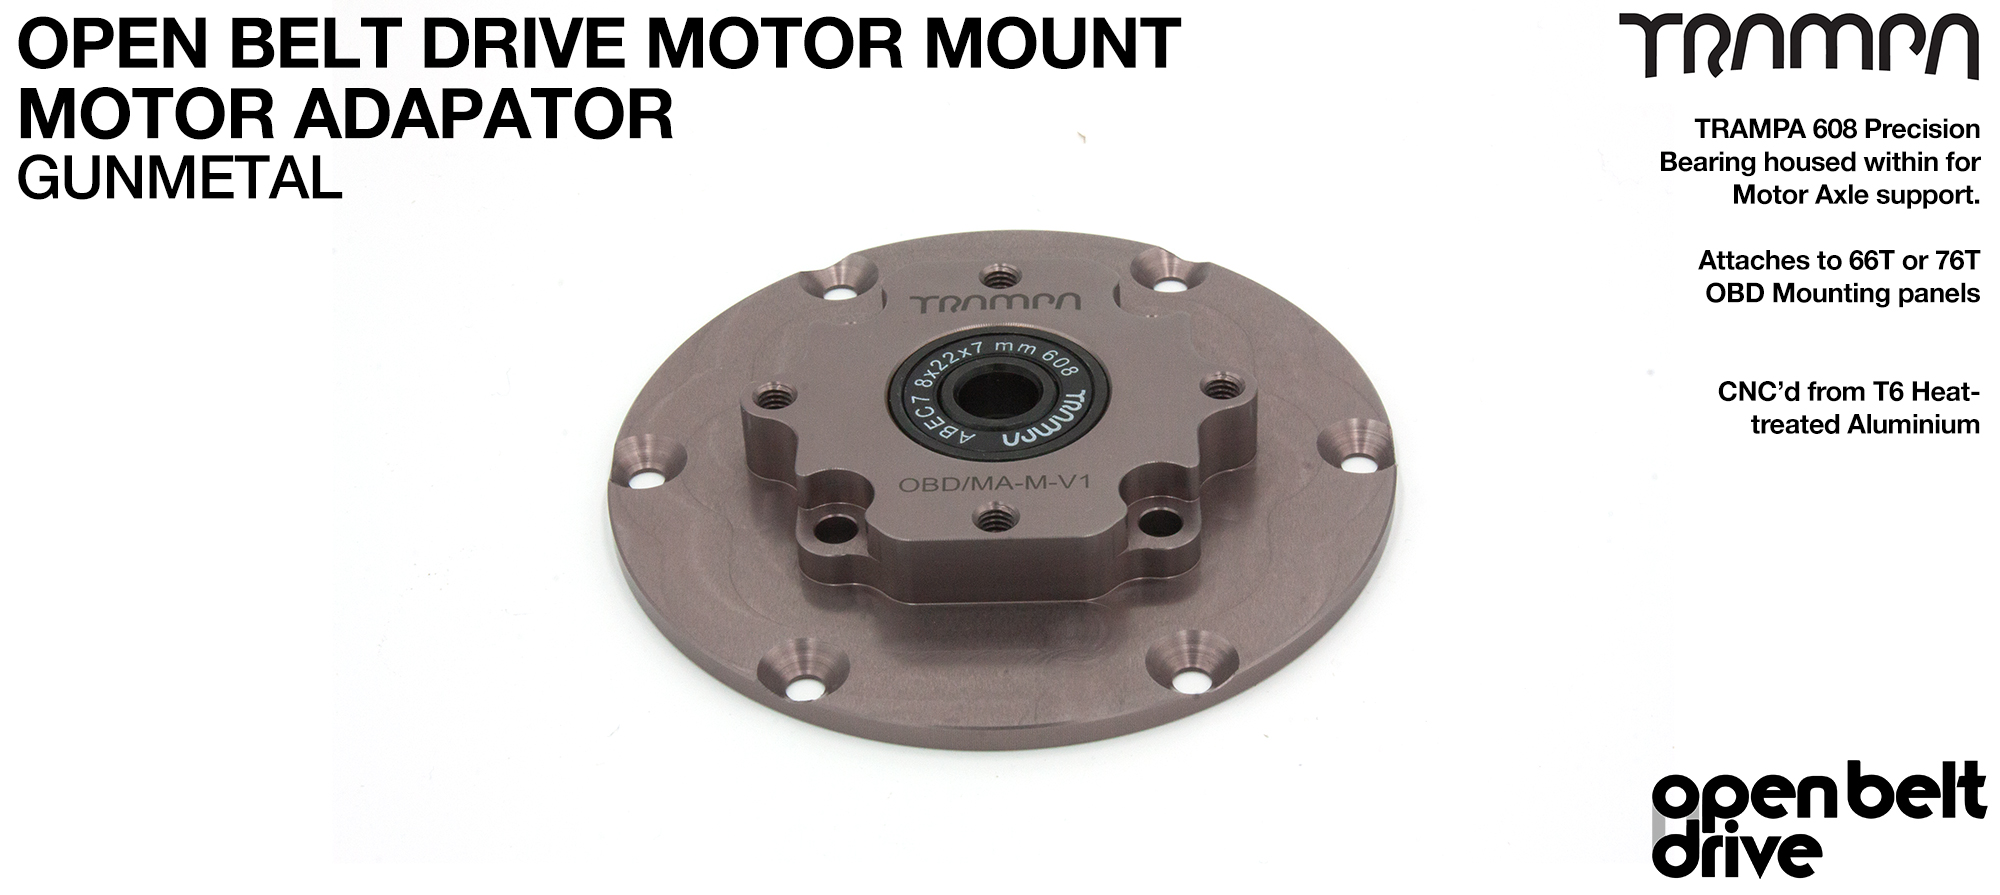 OBD Motor Adaptor with Housed Bearing - GUNMETAL